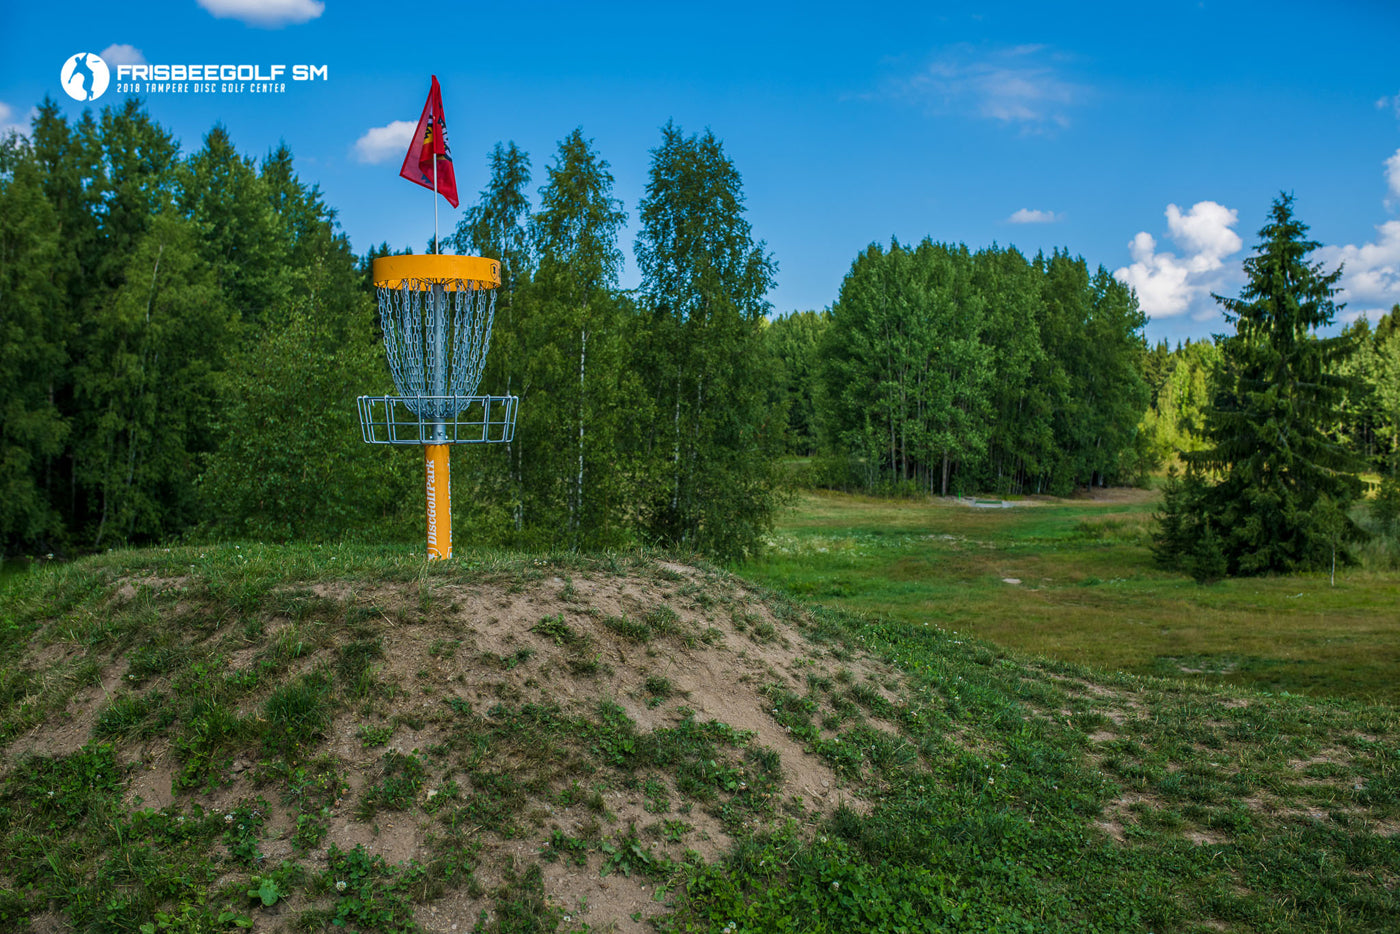 Basket at the Tampere Disc Golf Center